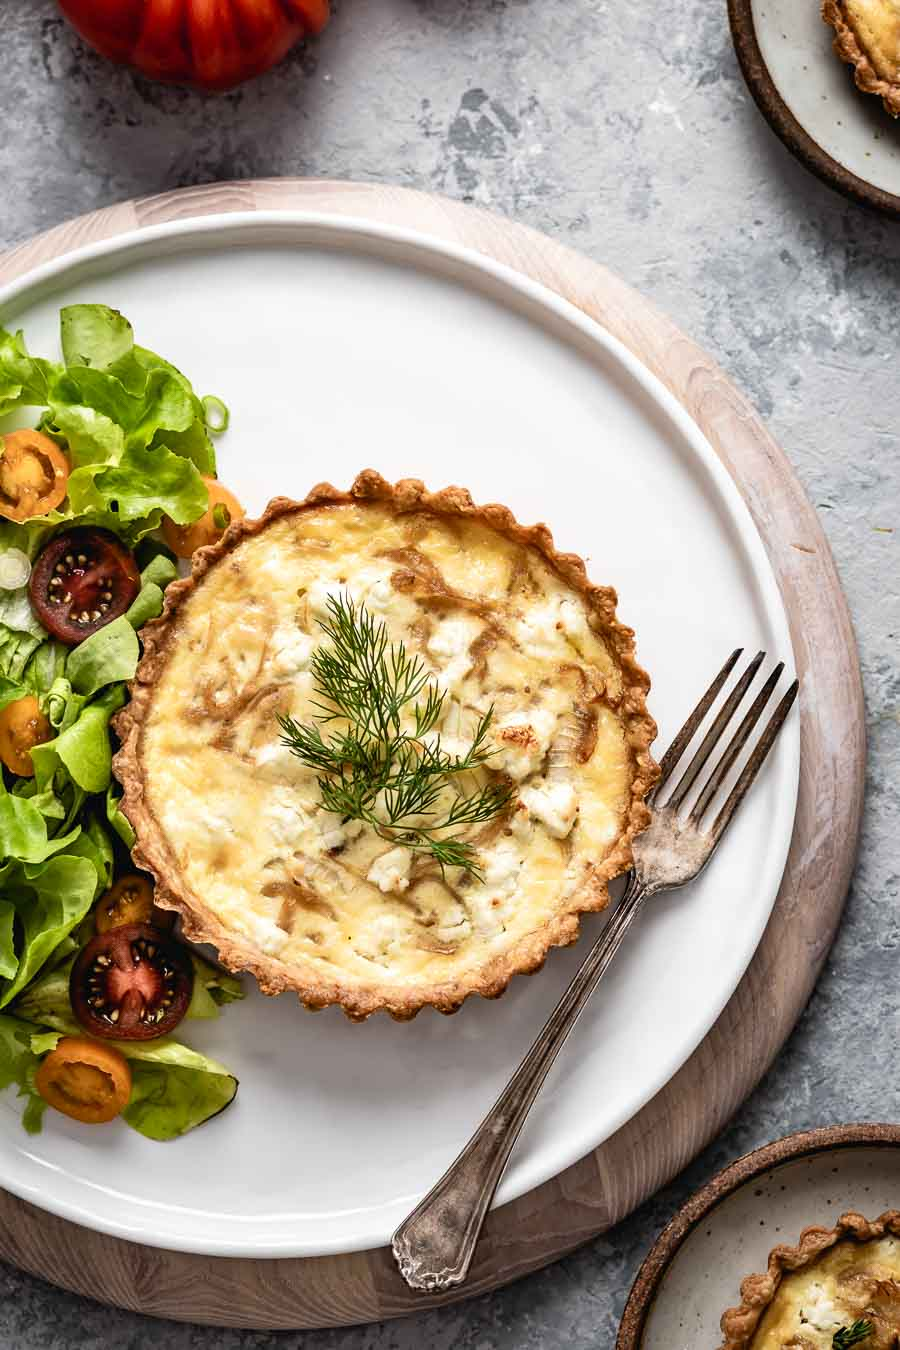 Goat cheese quiche with green salad on the side.